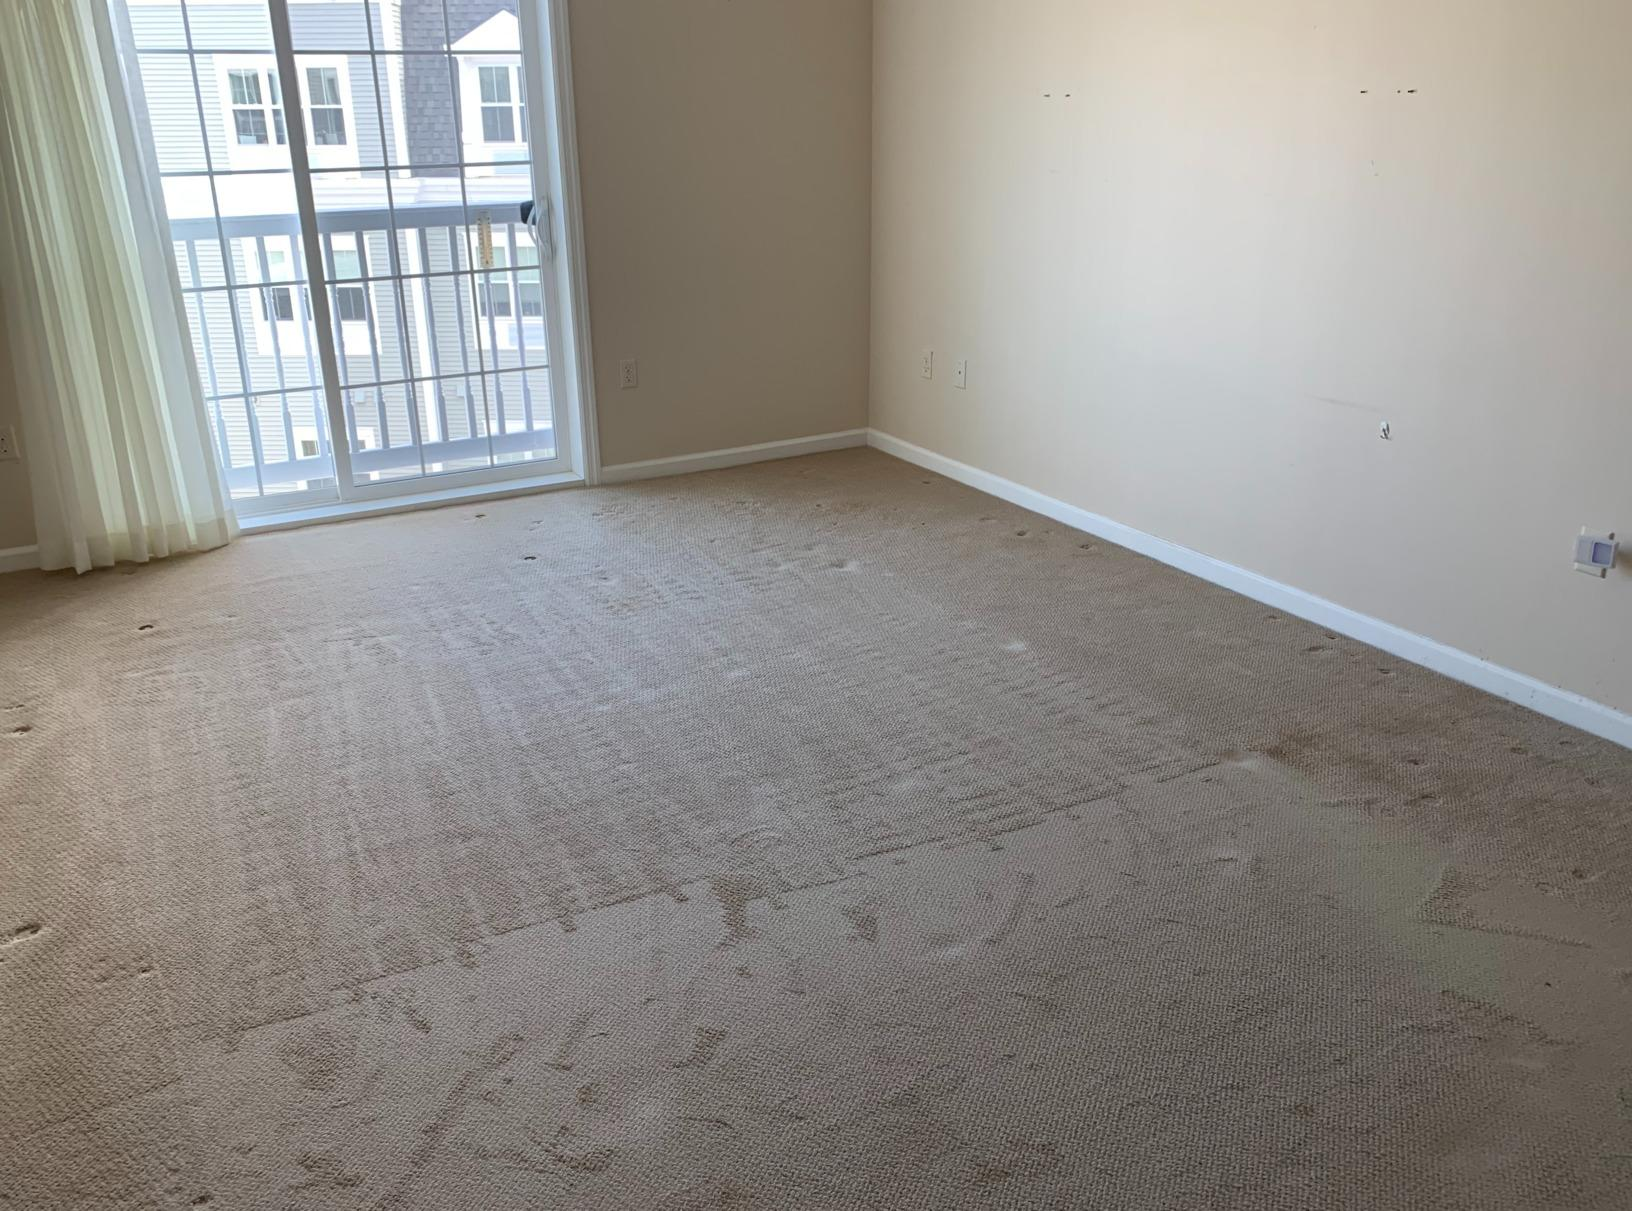 Apartment cleanout in Canton, MA - After Photo